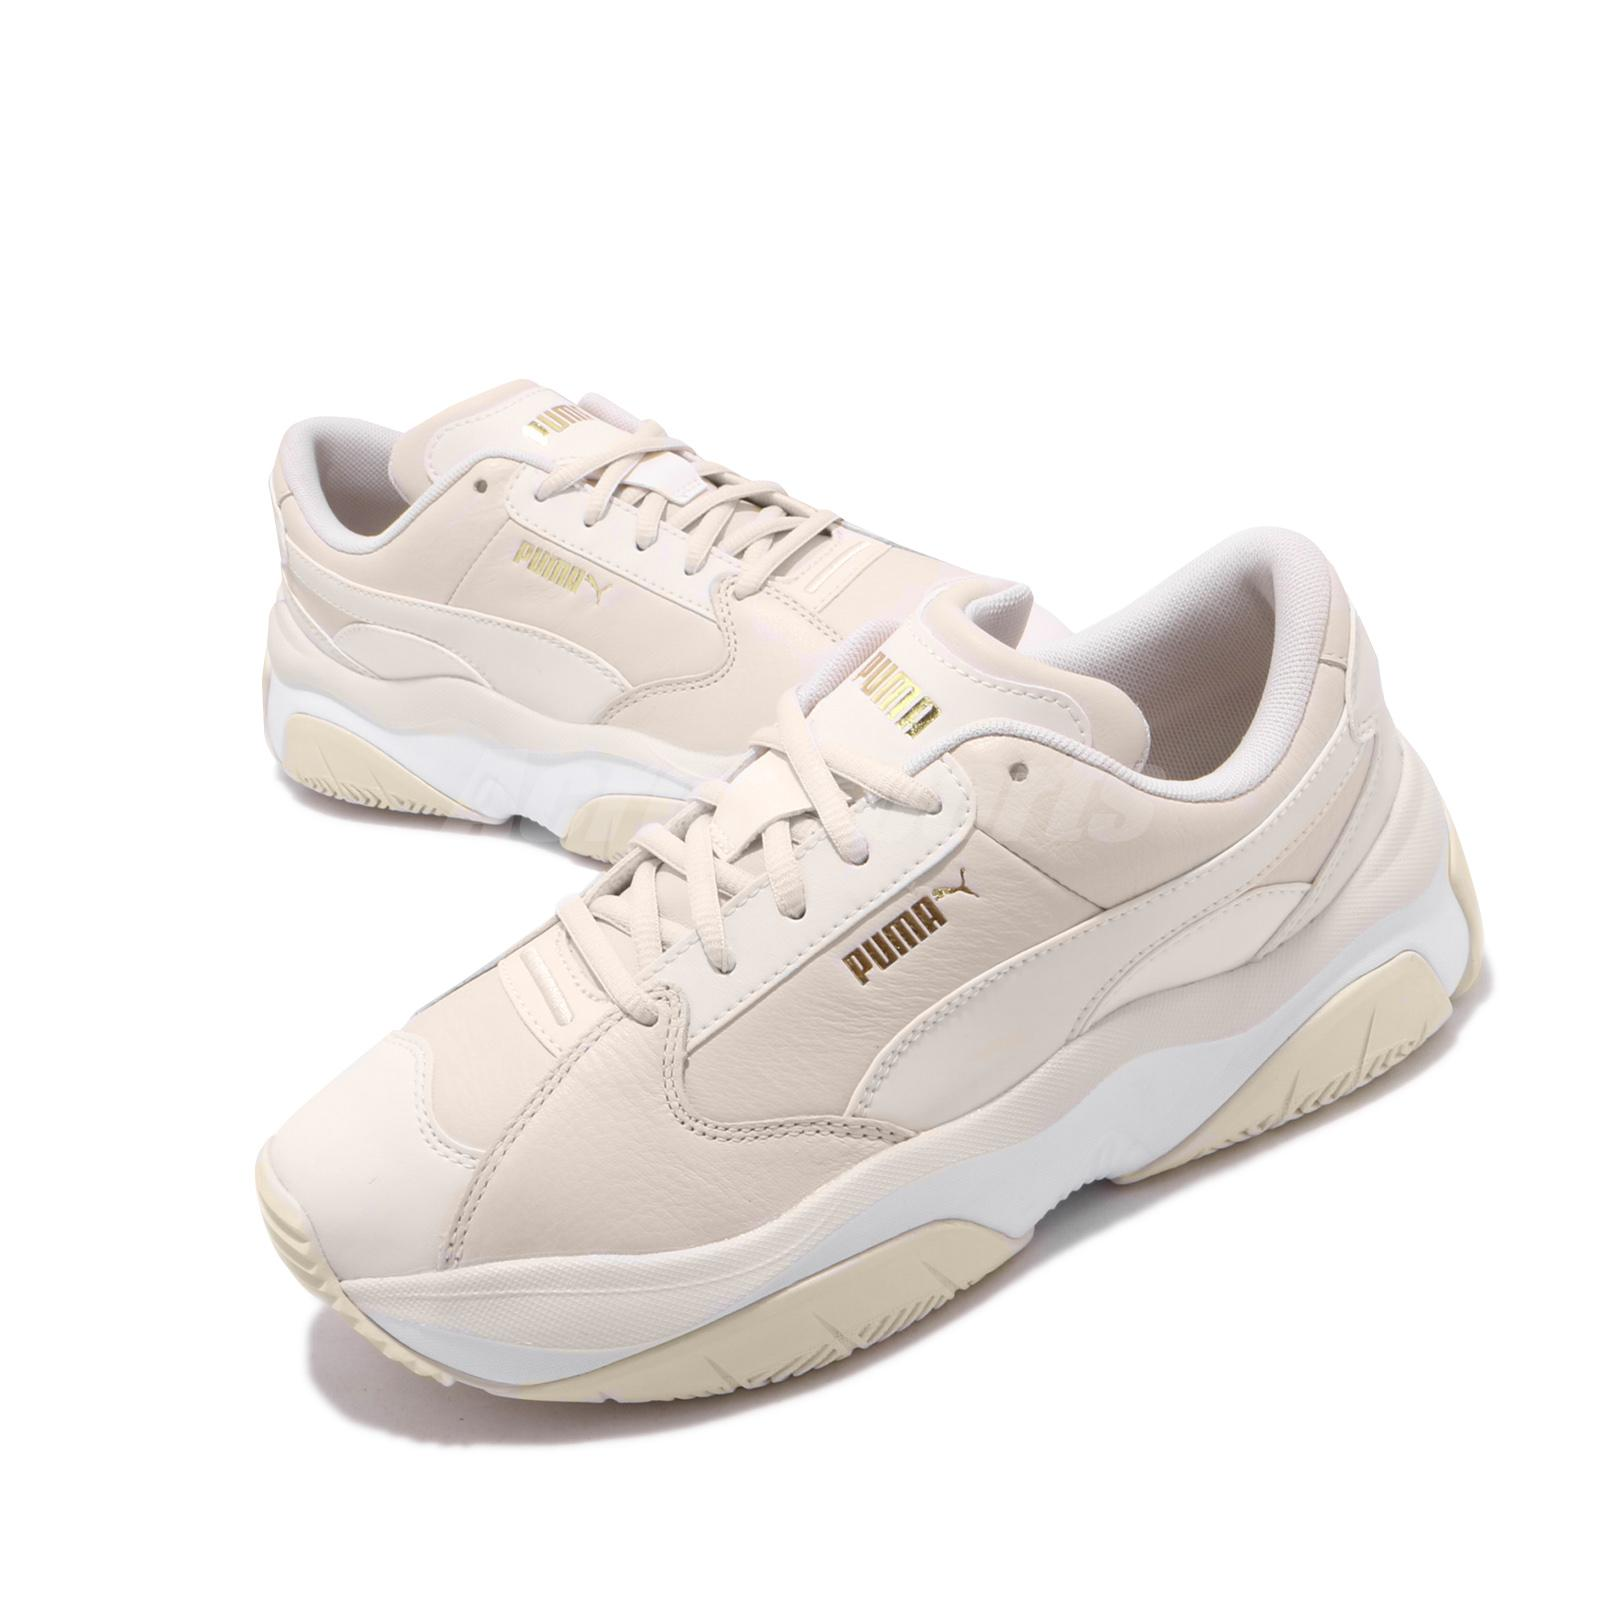 Details about Puma Storm.Y L Wns Ivory Beige Women Lifestyle Chunky Daddy  Shoes 372166-02